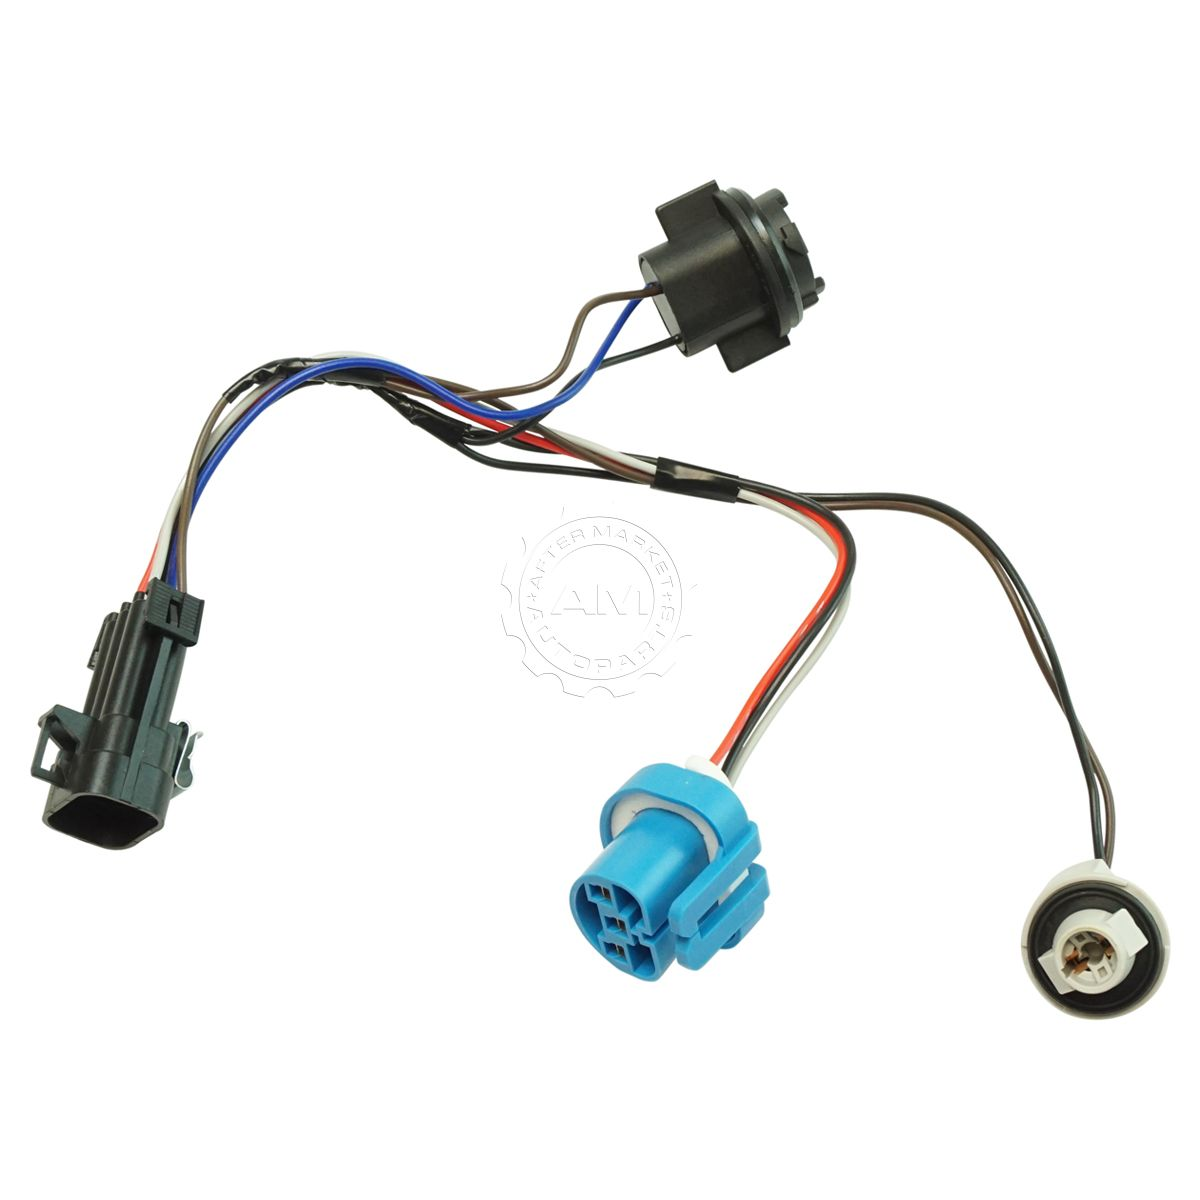 hight resolution of dorman headlight wiring harness or side for chevy cobalt pontiac g5 rh ebay com chevy cobalt 2006